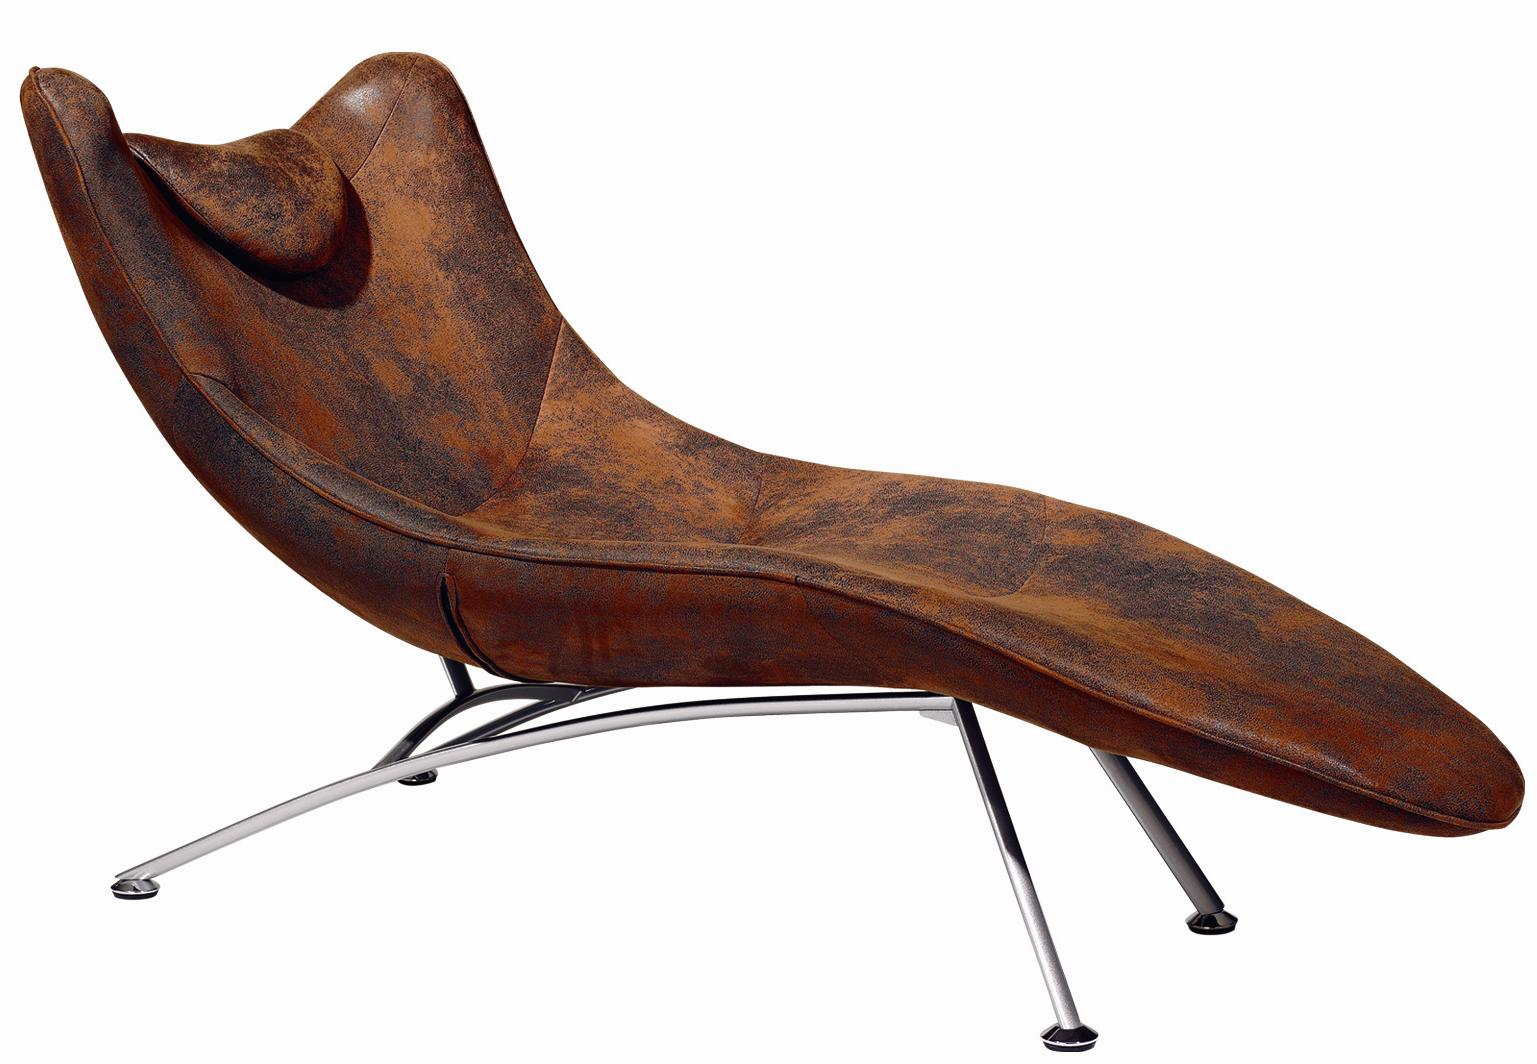 The Spectrum Of Design Beautiful Chaise Lounge